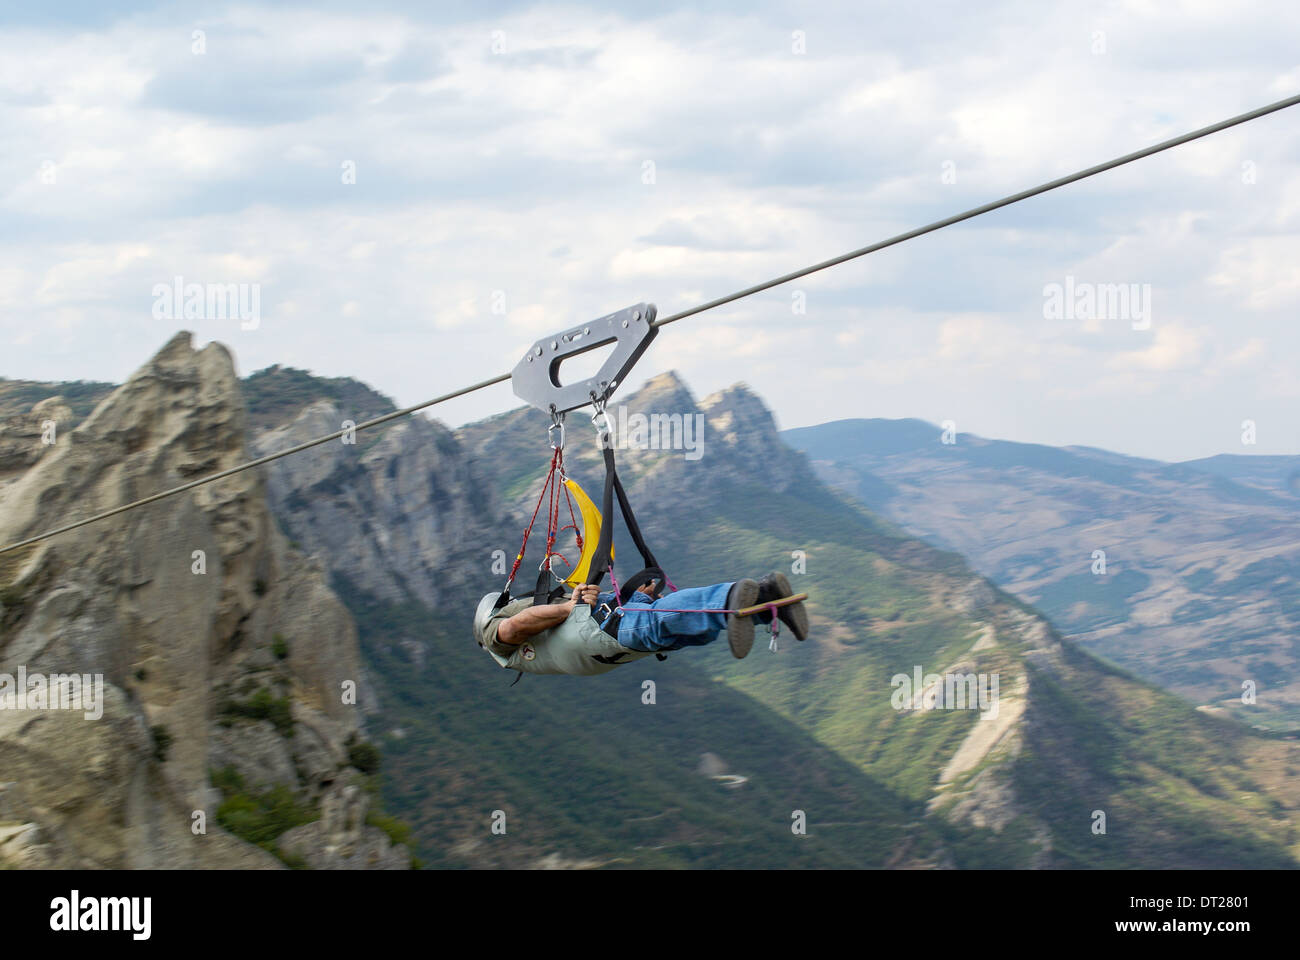 4 man zip wire wales honda monkey bike wiring diagram stock photos images alamy il volo del angelo flying on image